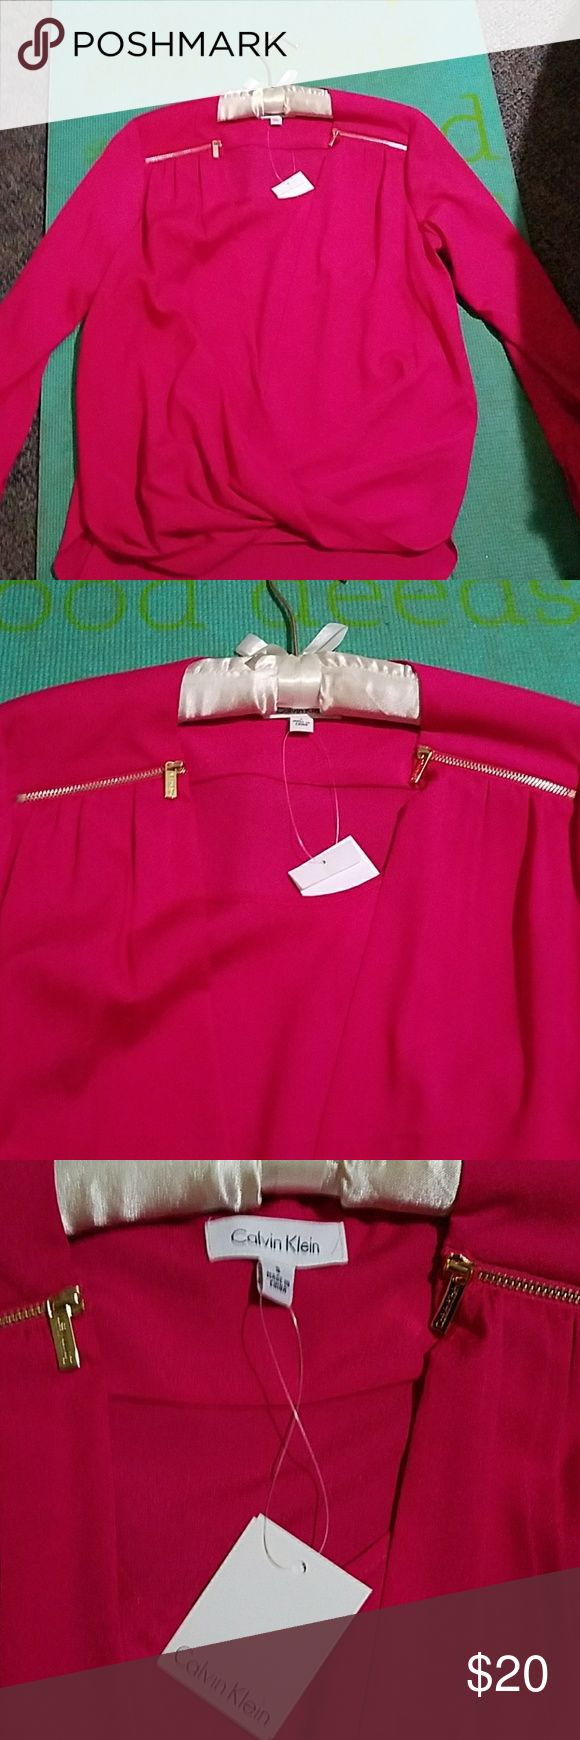 Calvin Klein hot pink blouse Calvin Klein HOT PINK blouse faux wrap style zipper embellishments on shoulders, buttons to roll up sleeves to 3/4 - model photo is the same blouse in blue Calvin Klein Tops Blouses